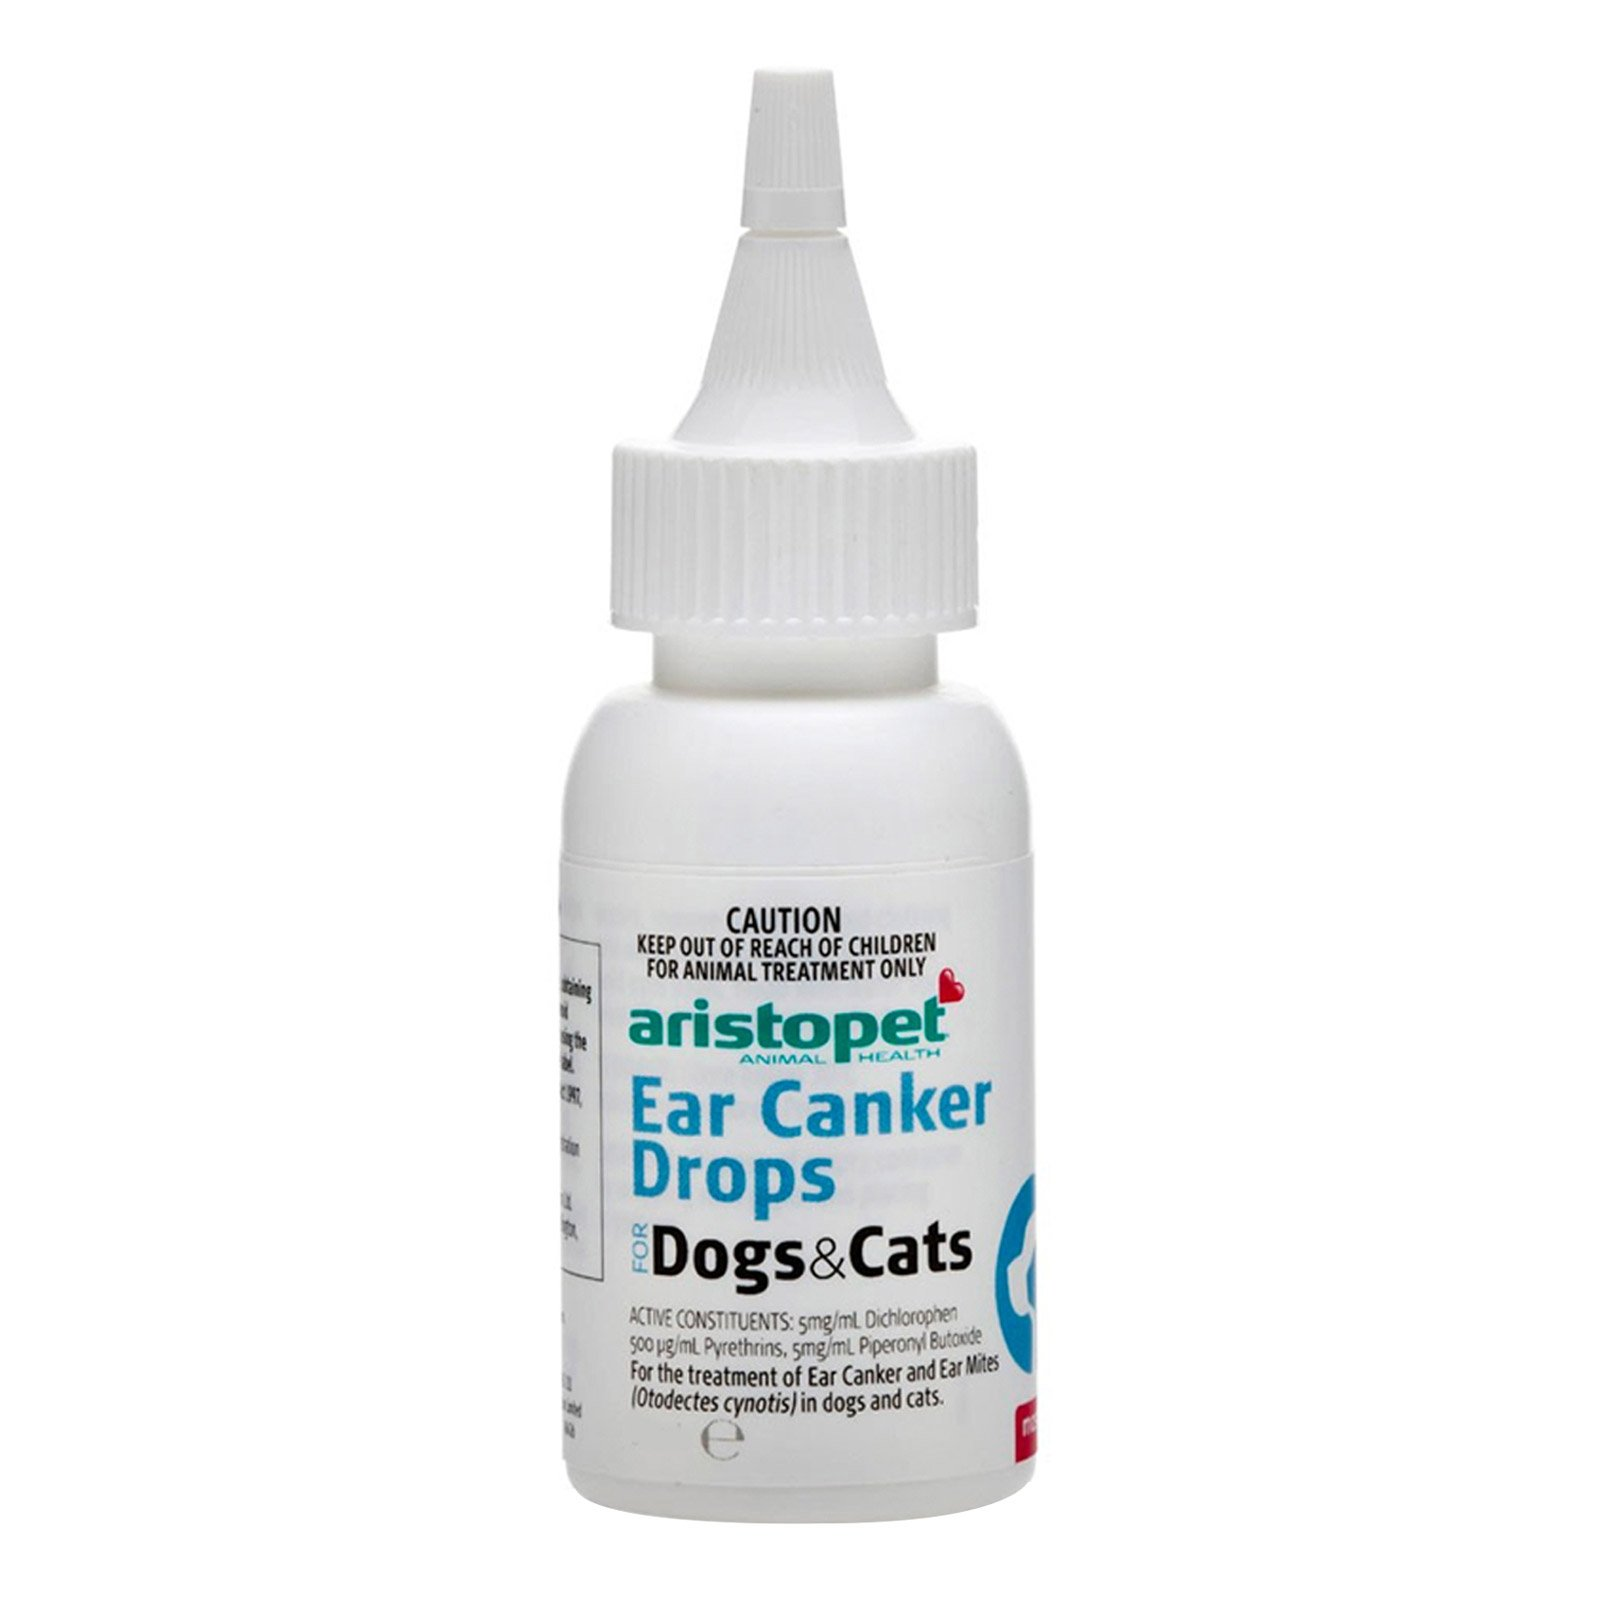 Aristopet Ear Canker Drops For Dogs And Cats